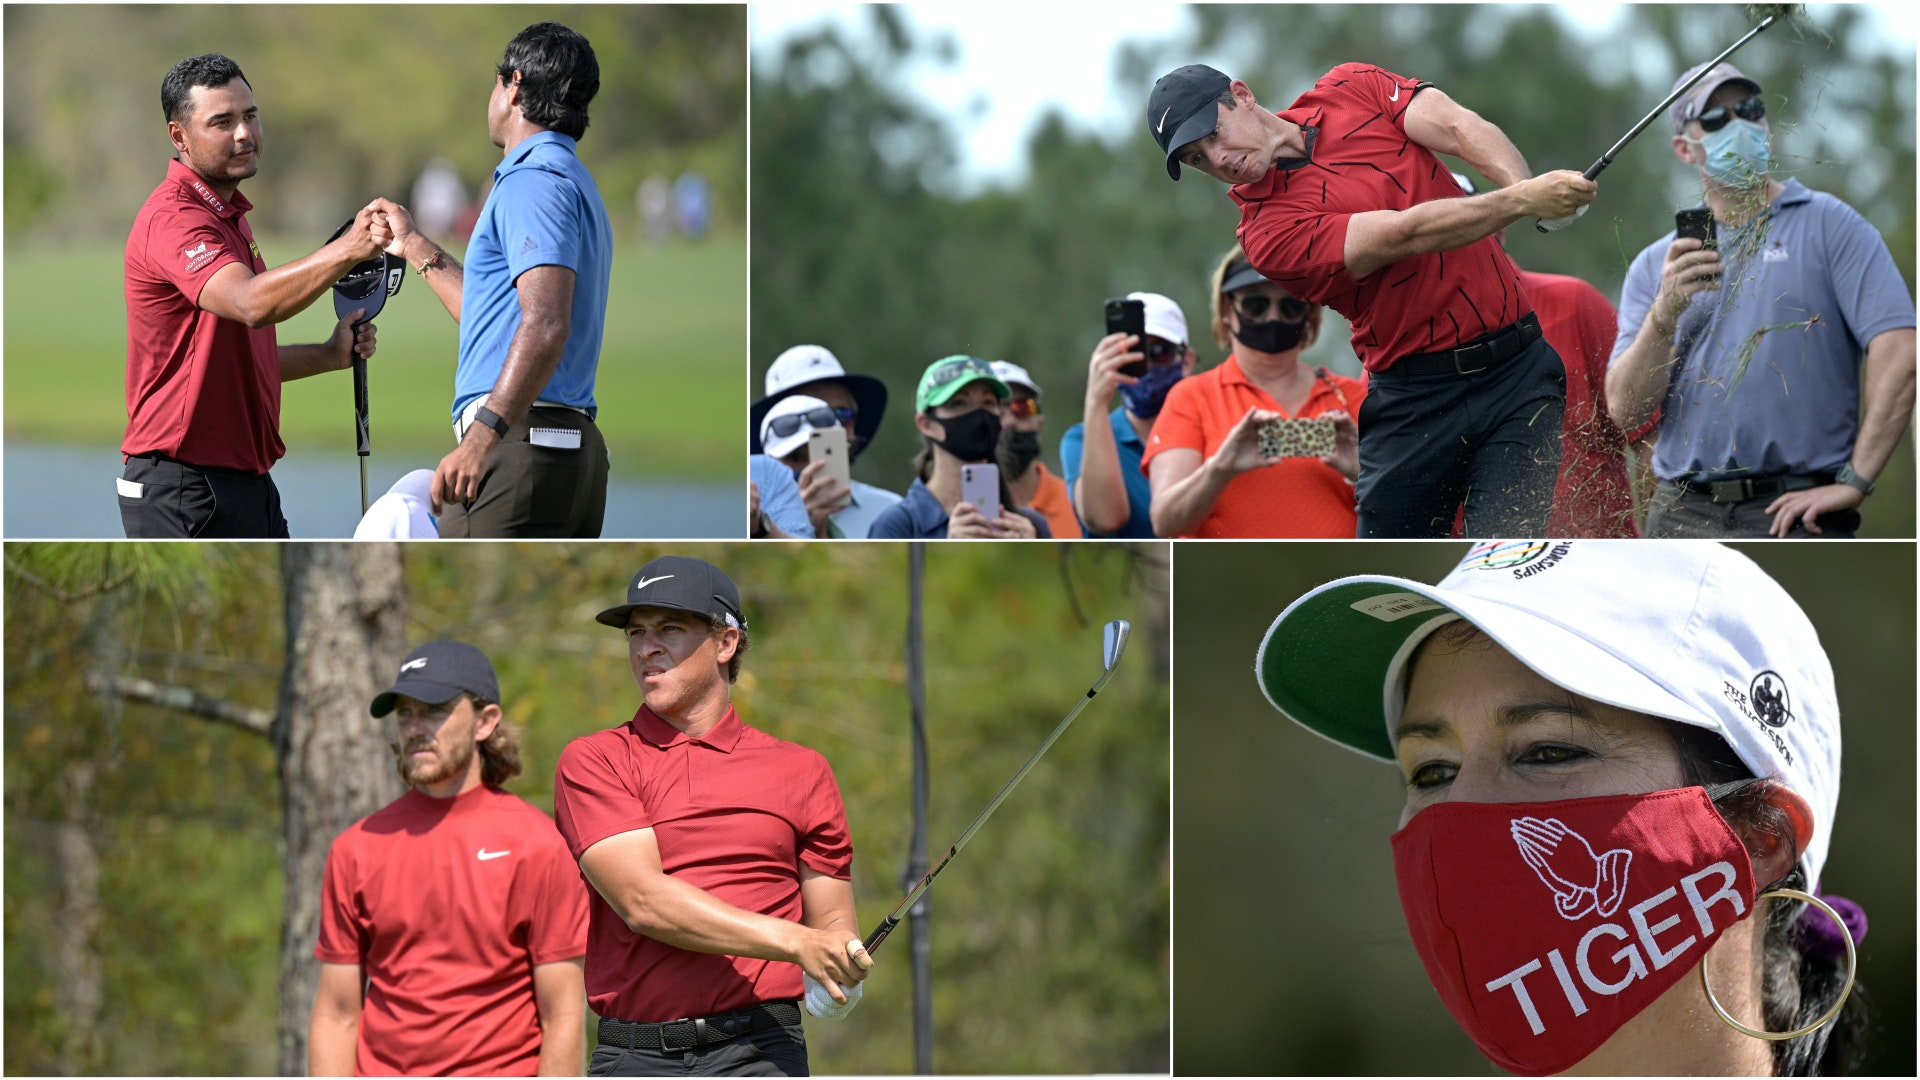 They can wear red, but golf's not the same without Tiger on Sunday | Star Tribune